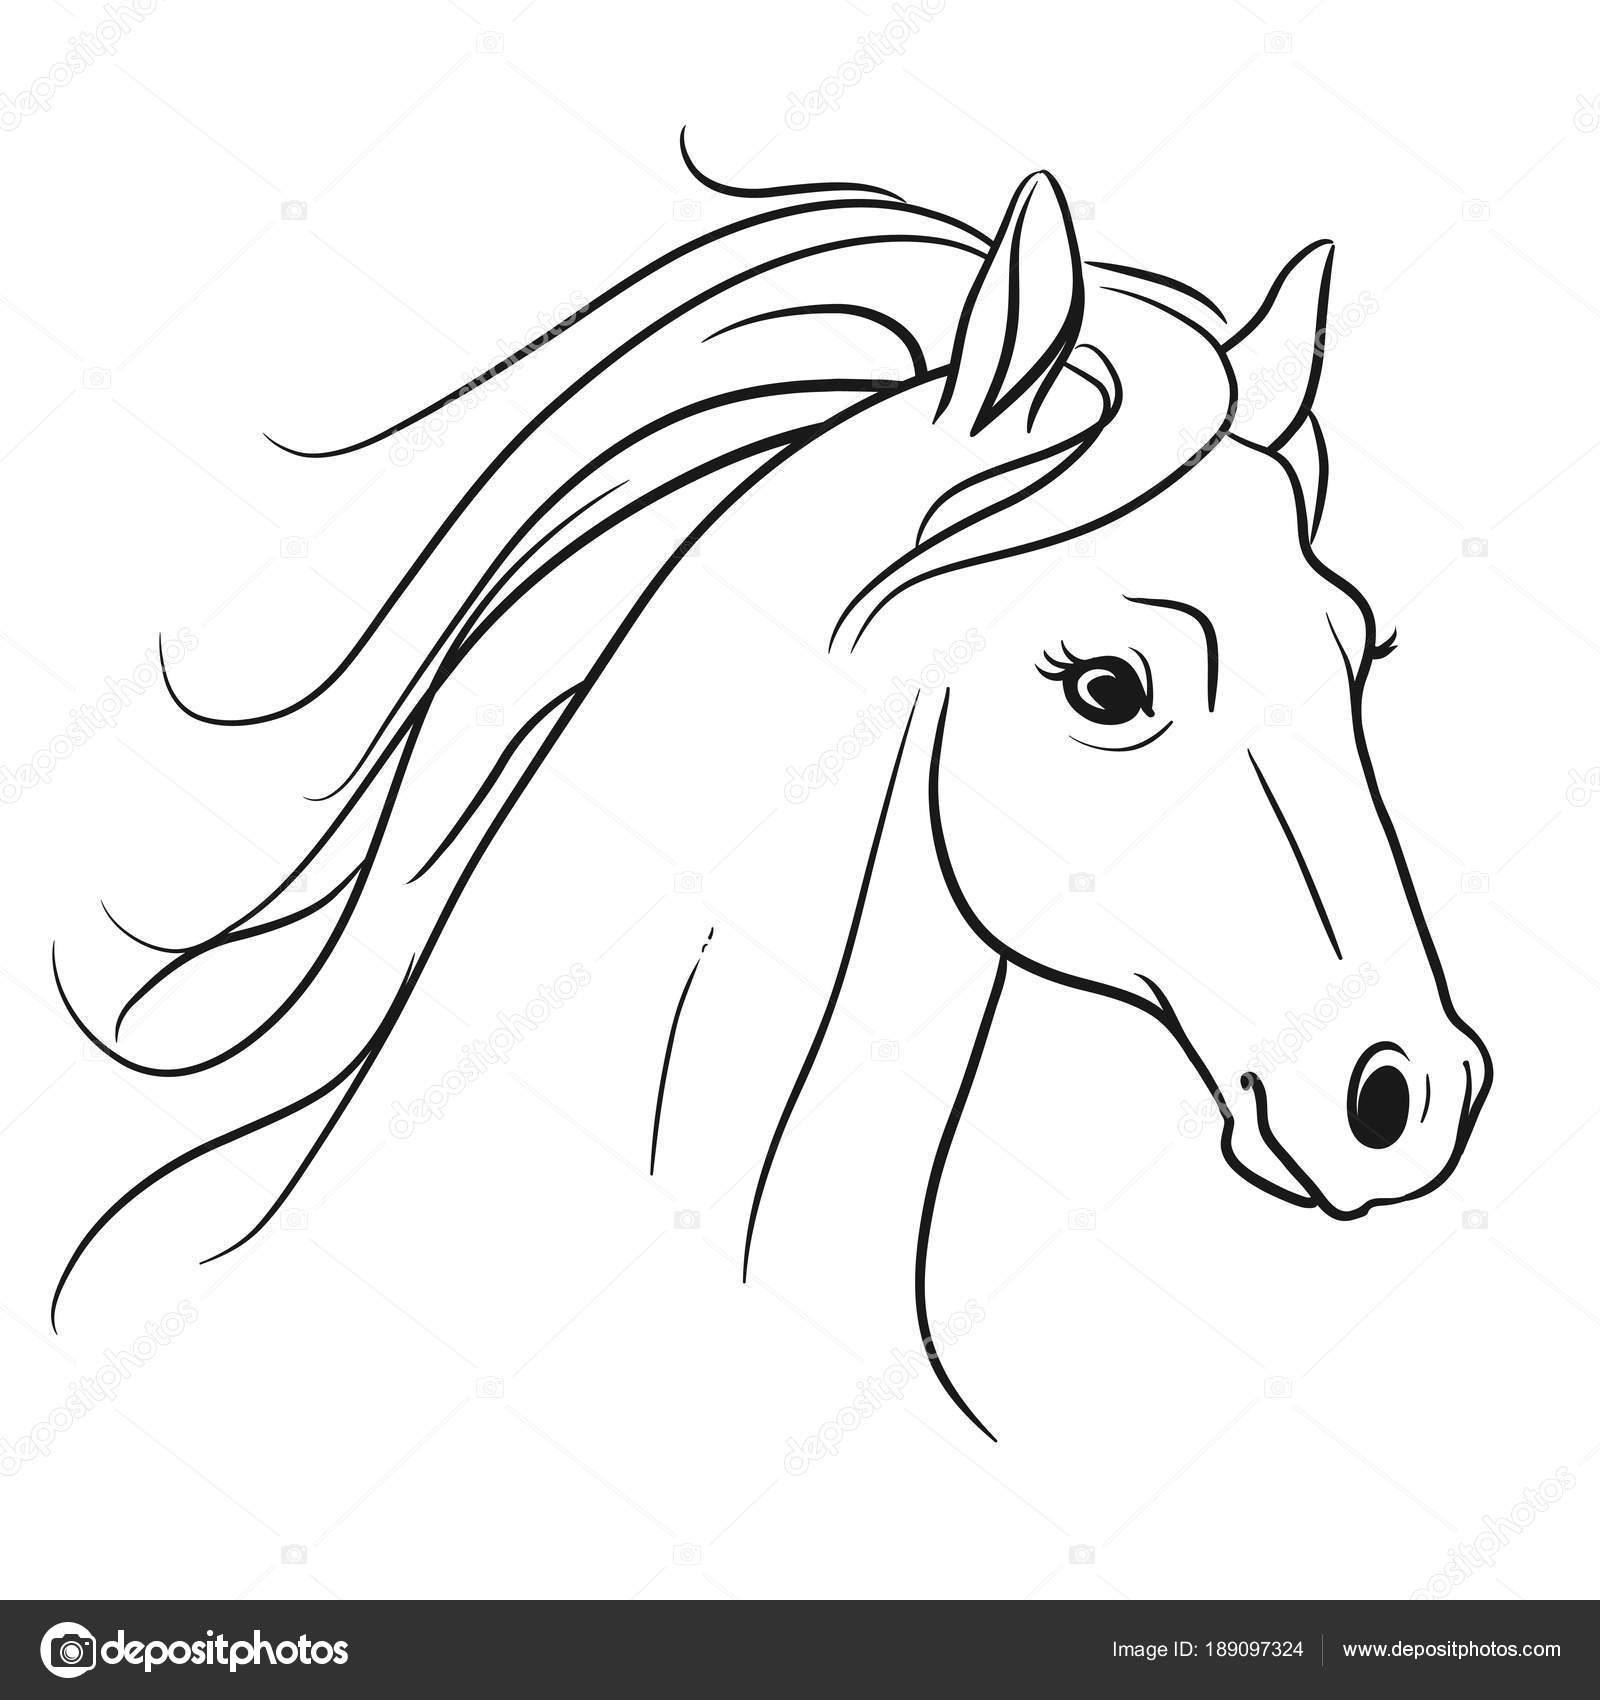 Horse Head Side View Drawing Horse Head With Flowing Mane Portrait Side View Pen And Ink Sty Stock Vector C Treemouse 189097324